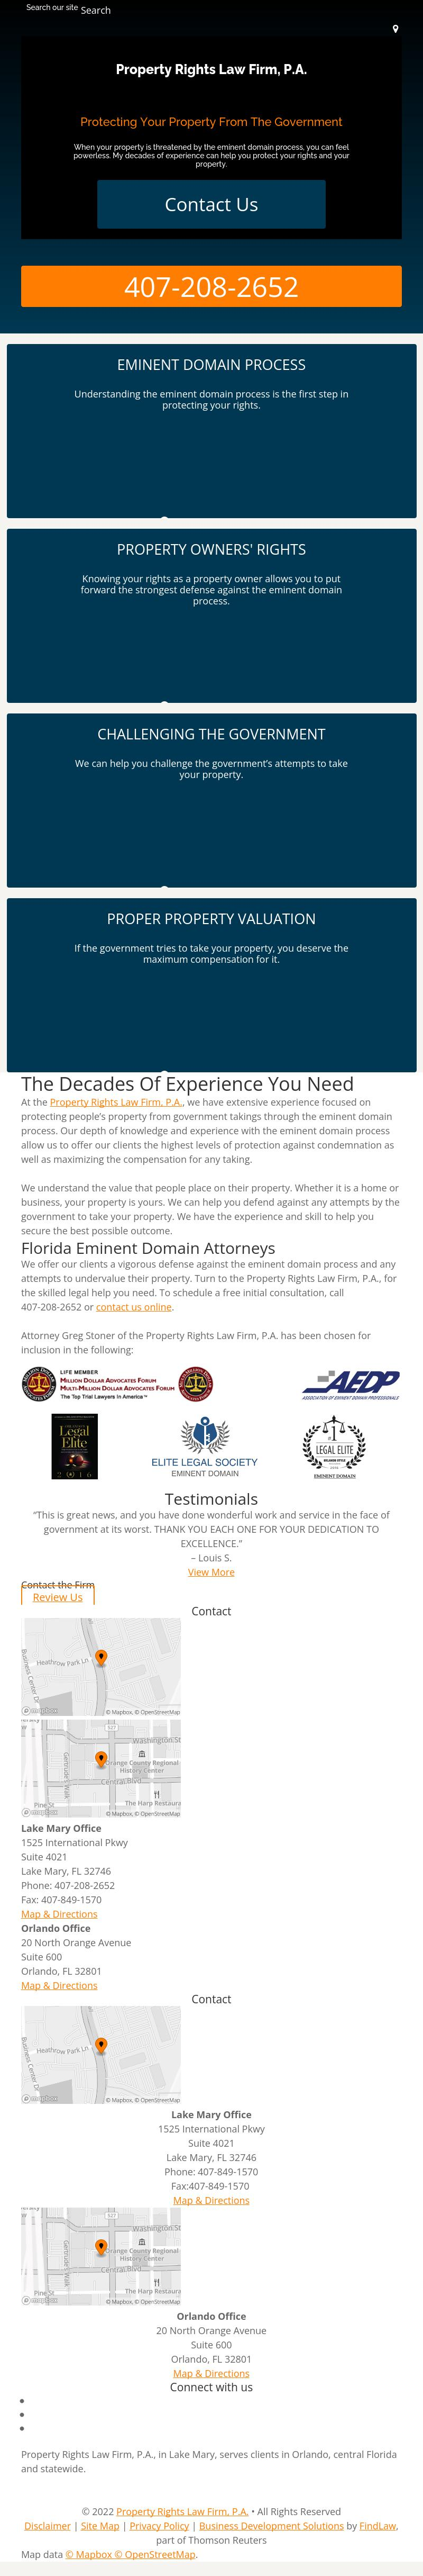 Property Rights Law Firm, P.A. - Lake Mary FL Lawyers